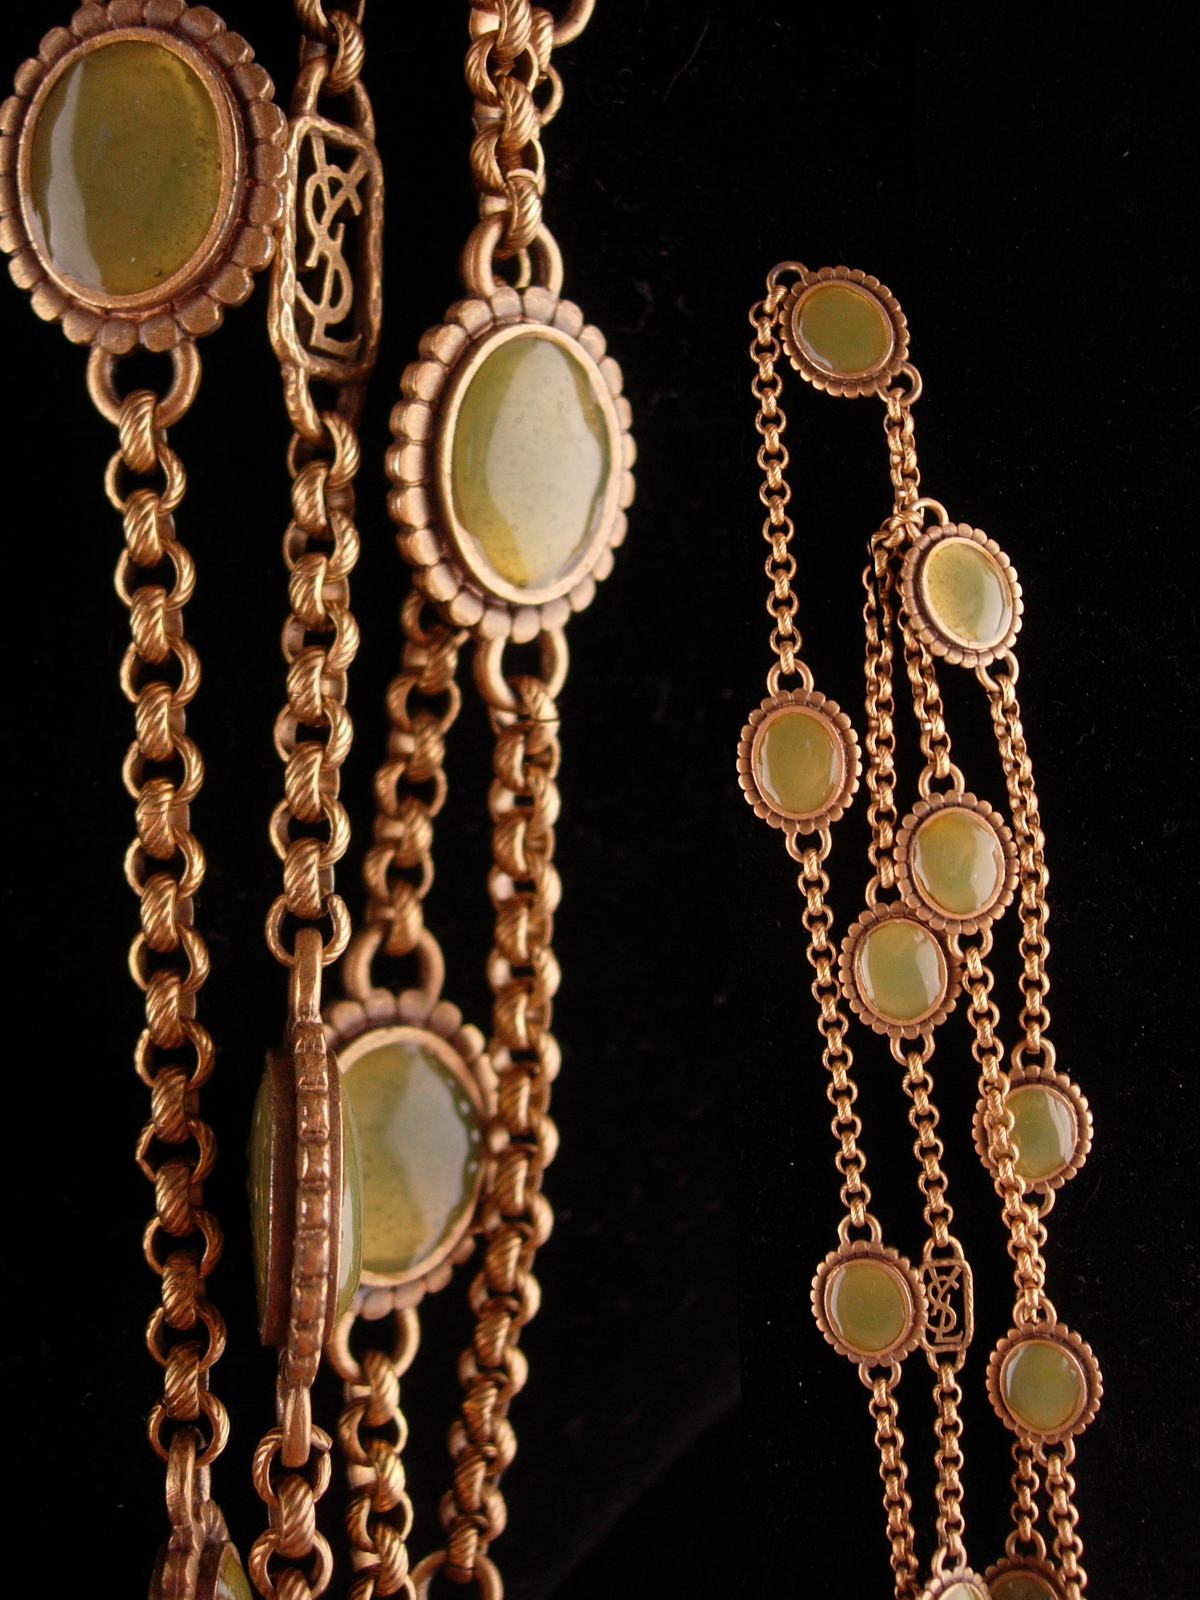 Vintage Yves Saint Laurent necklace - Gripoix glass - French jewelry - olive gre